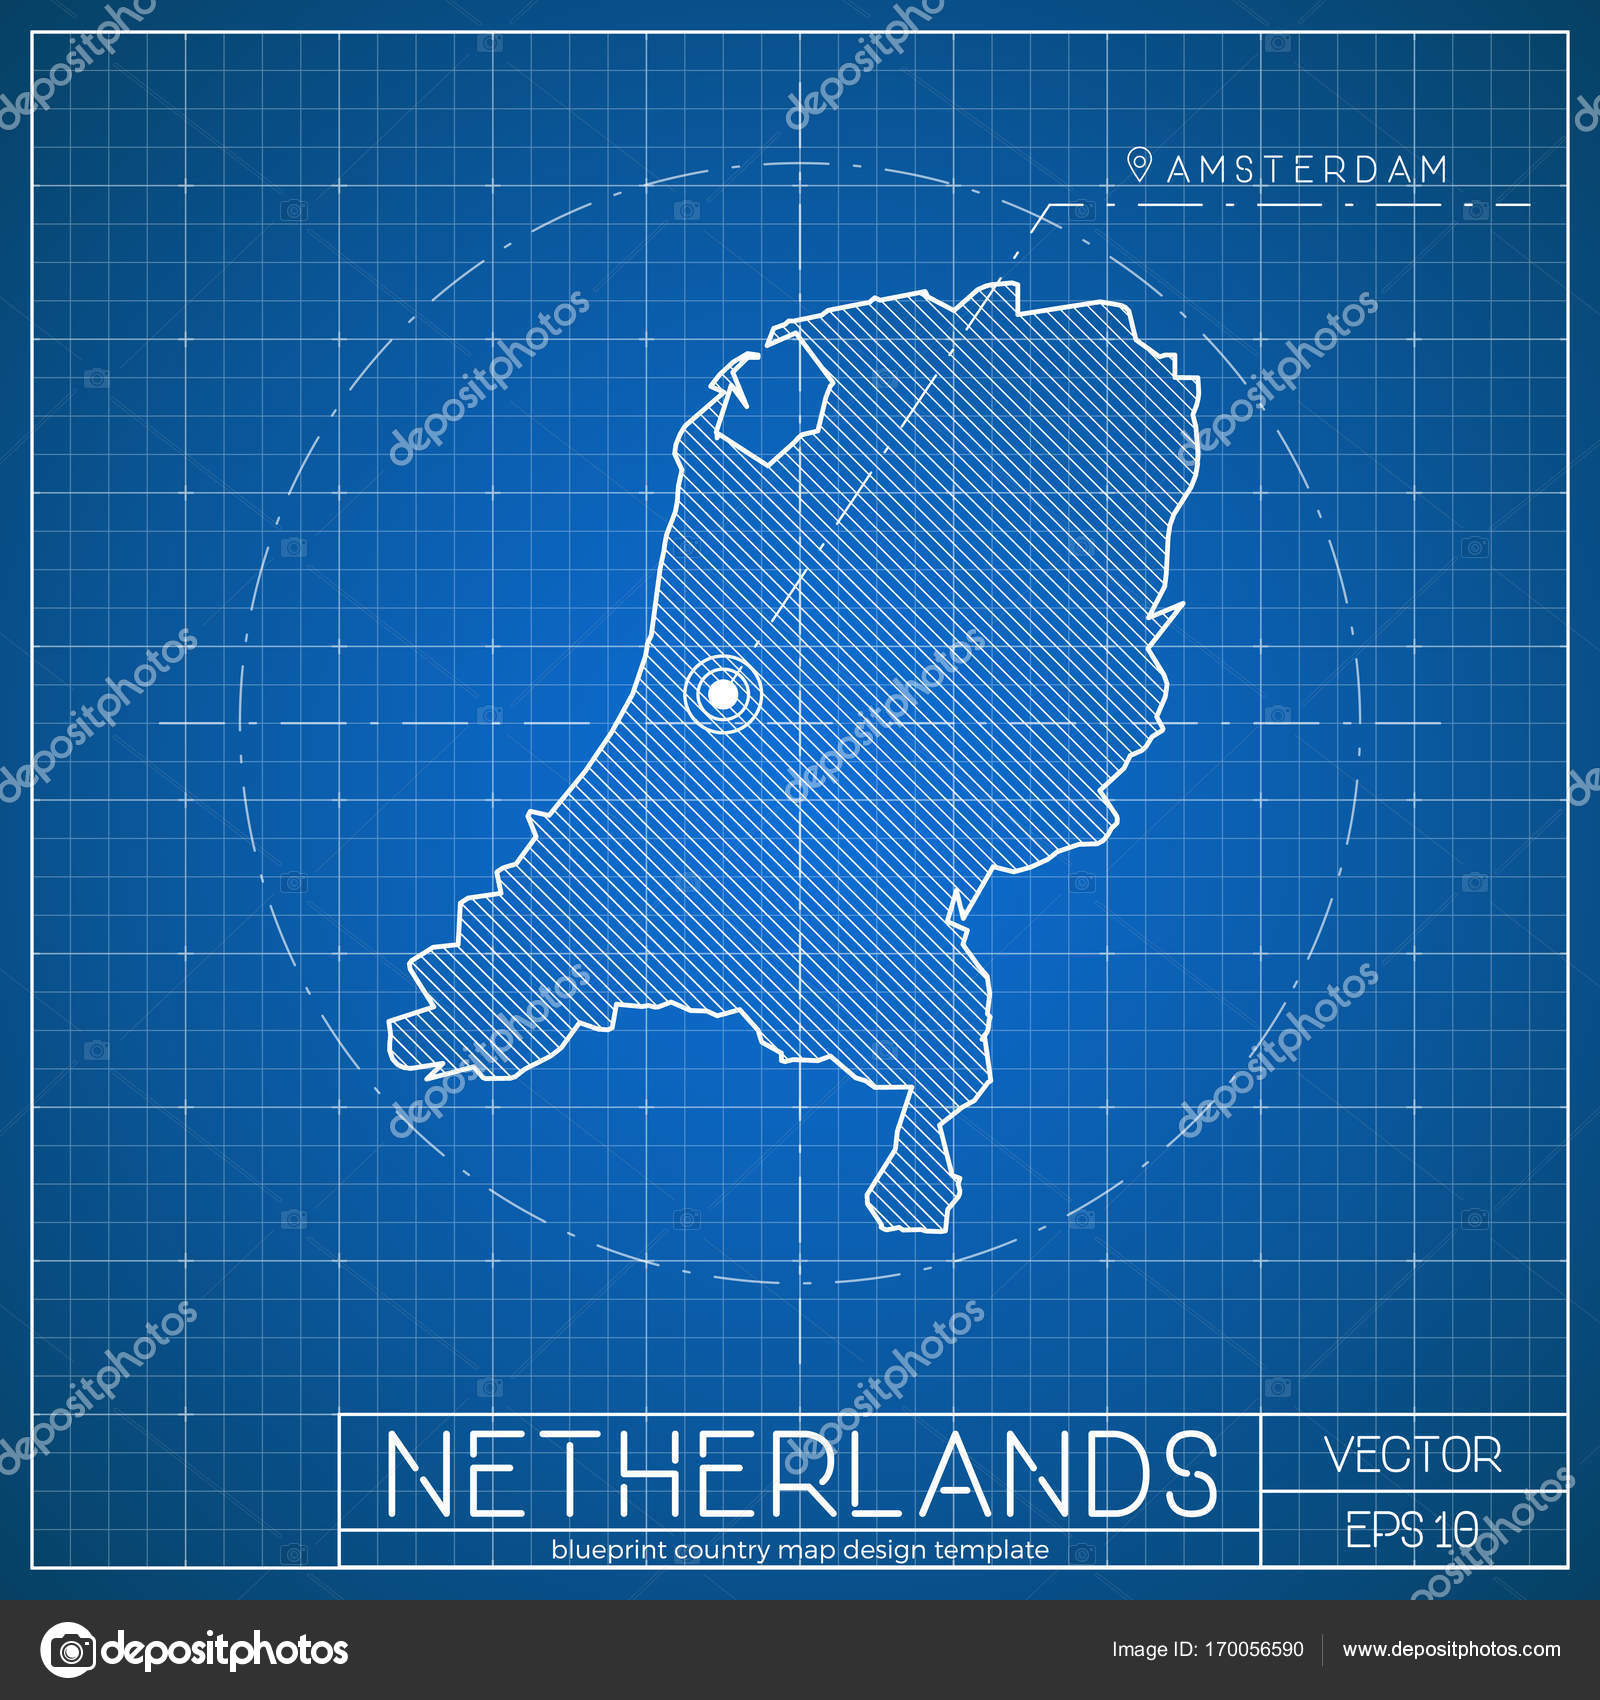 Netherlands blueprint map template with capital city amsterdam netherlands blueprint map template with capital city amsterdam marked on blueprint dutch map stock vector malvernweather Image collections